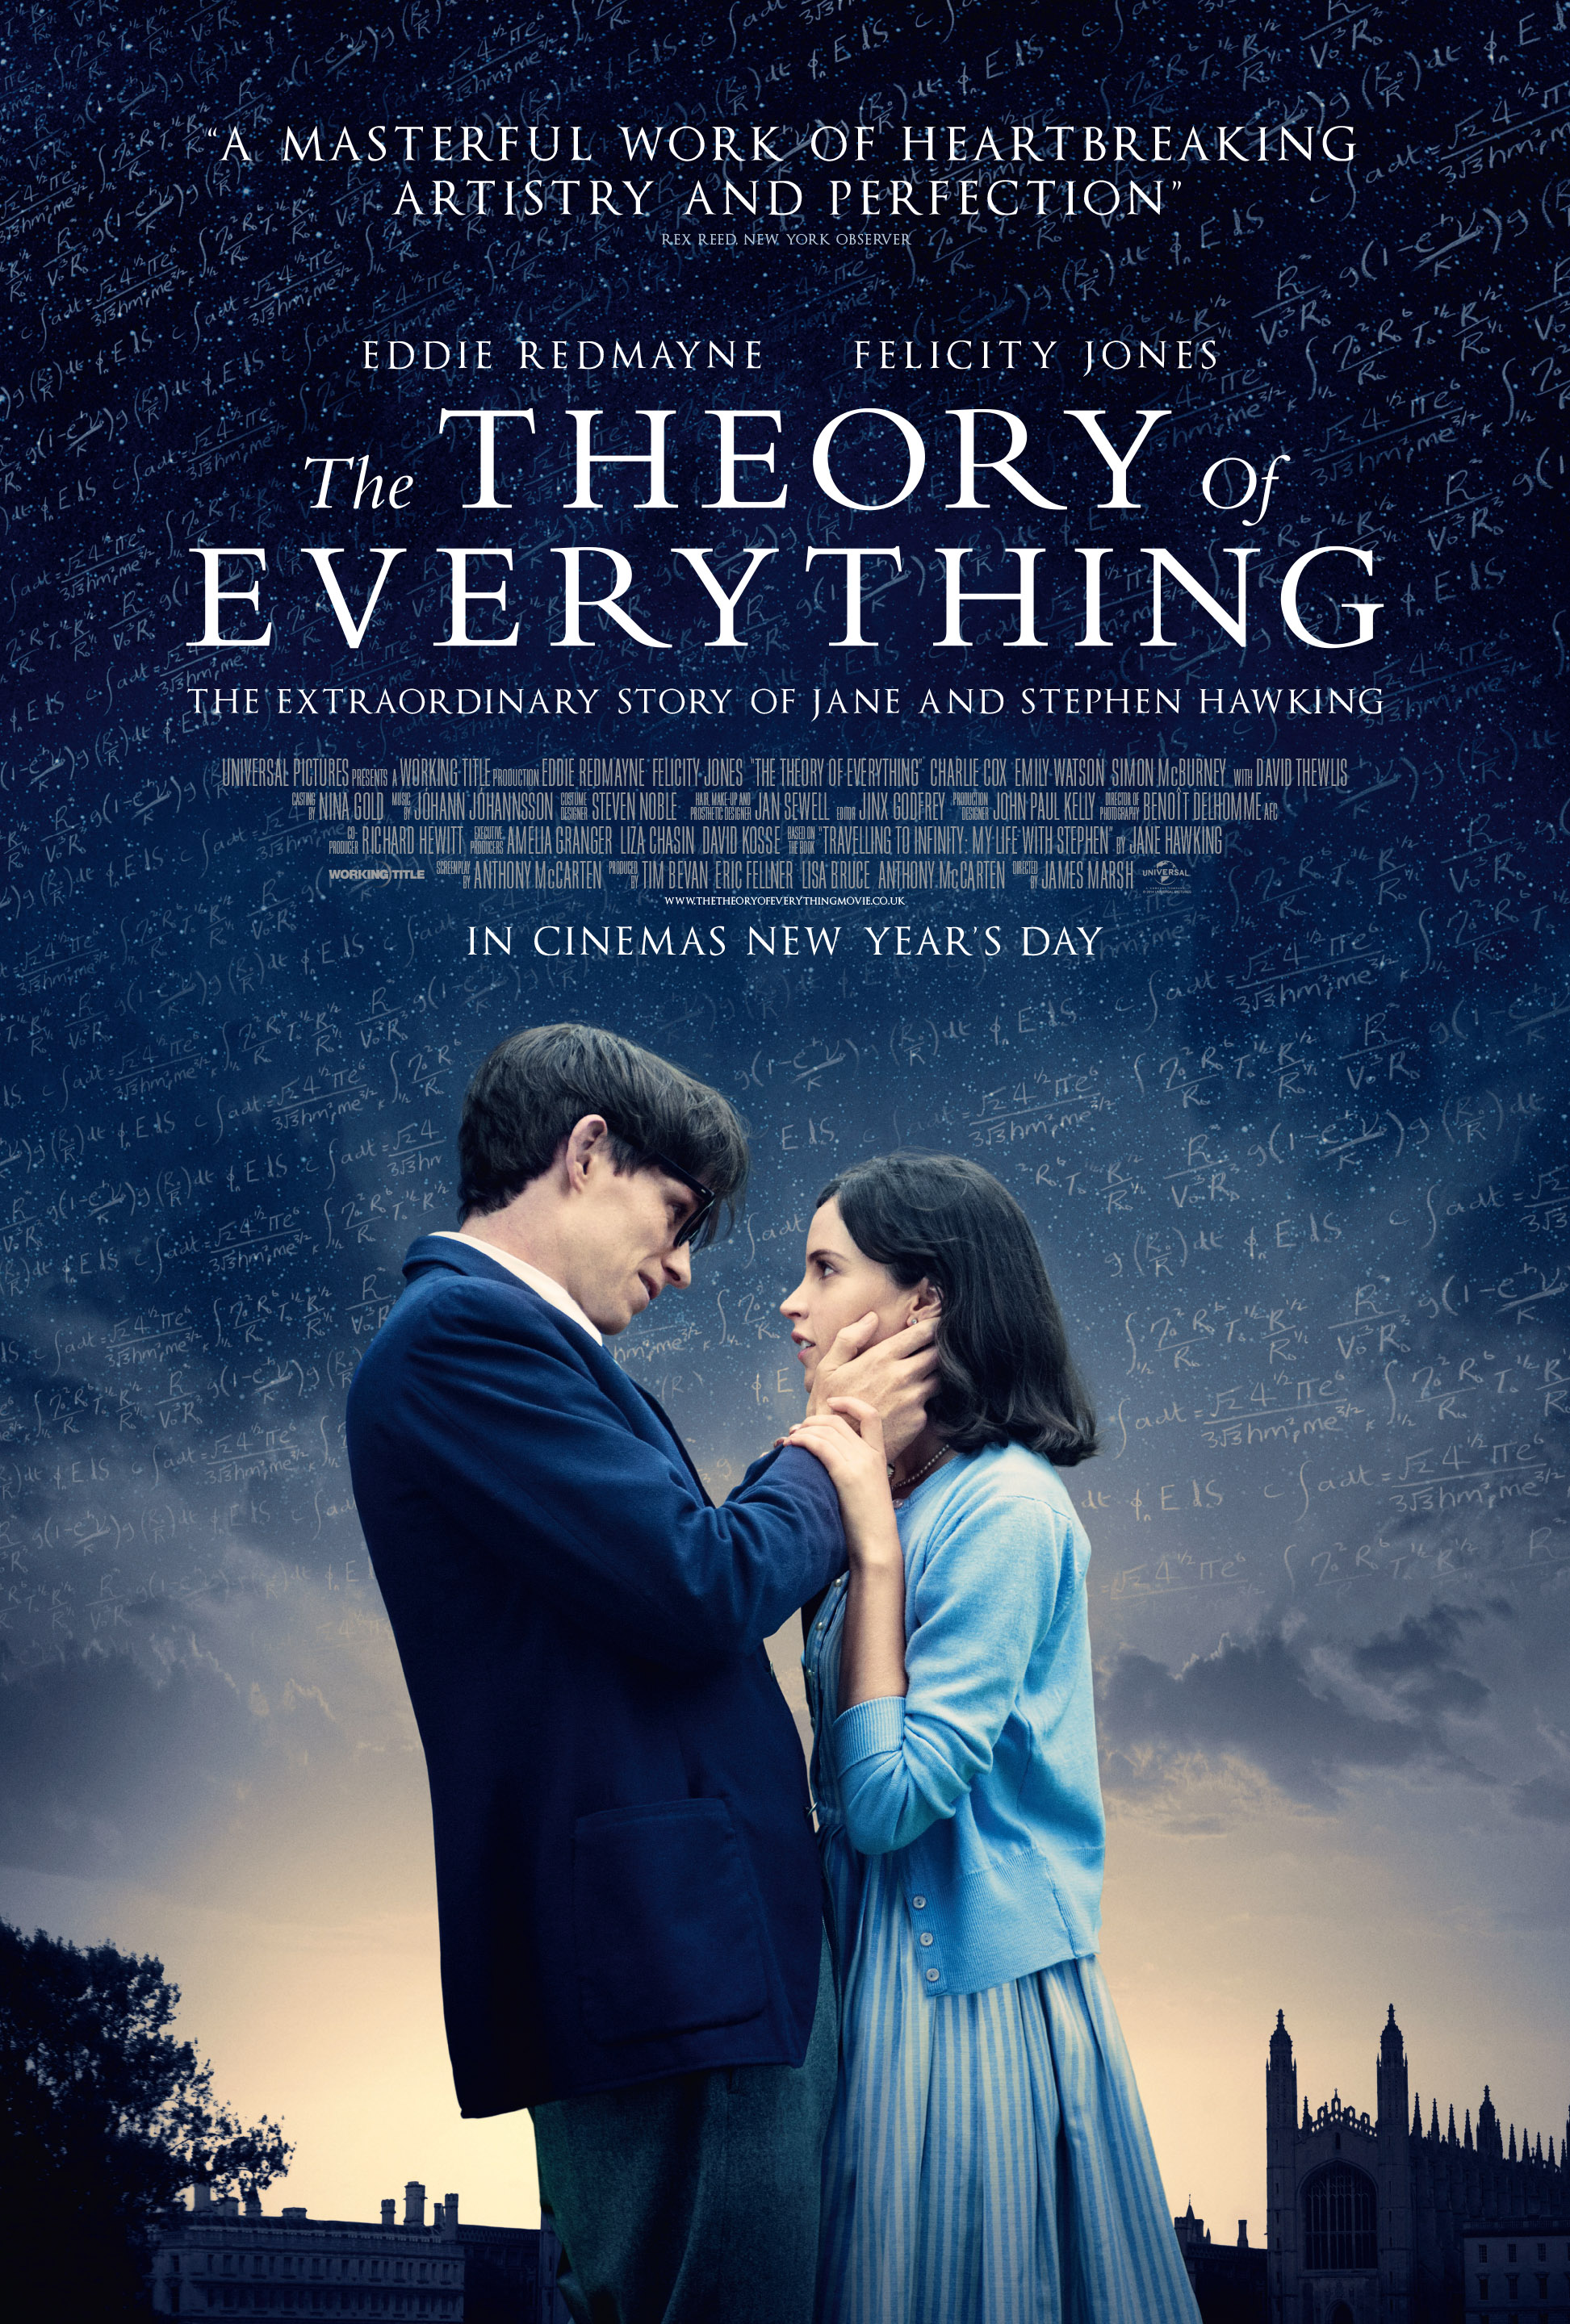 Download The Theory of Everything 2014 BRRip XviD AC3-EVO